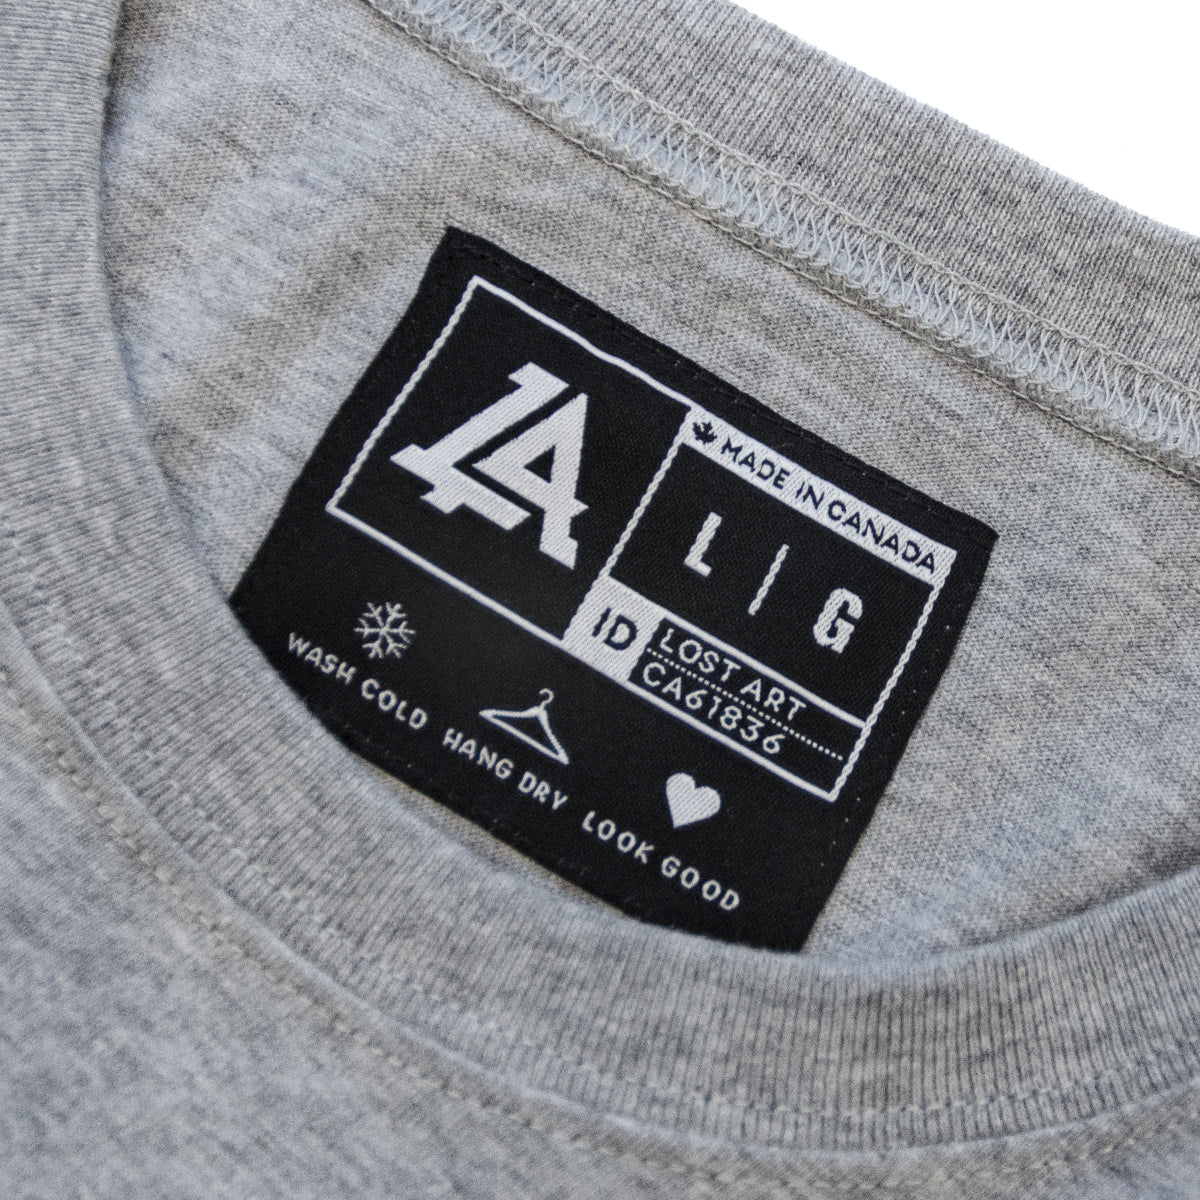 Lost Art Canada - white on grey basic women logo tee inside tag view